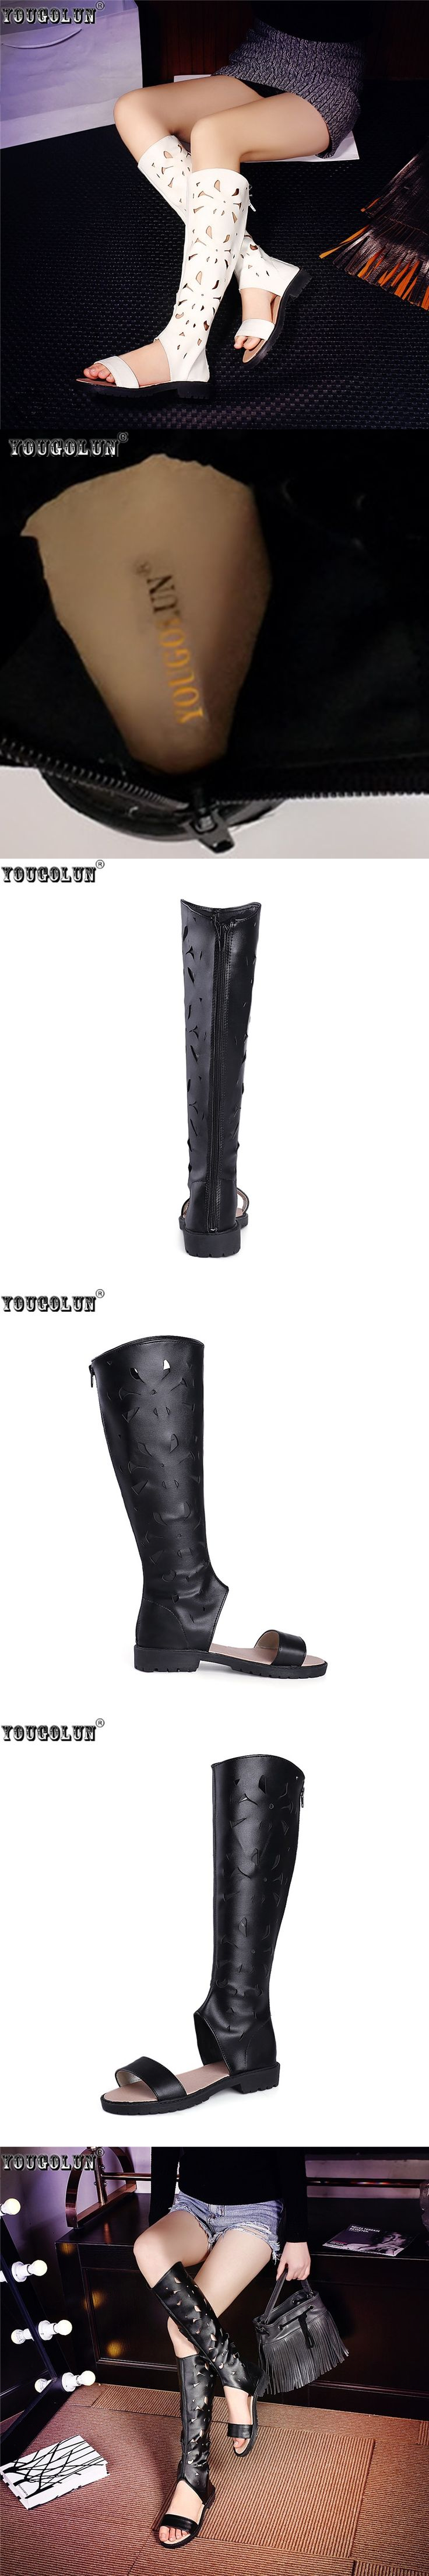 YOUGOLUN woman fashion summer thigh high boots women cut outs knee high boots womens low heels shoes women's open toe sandals